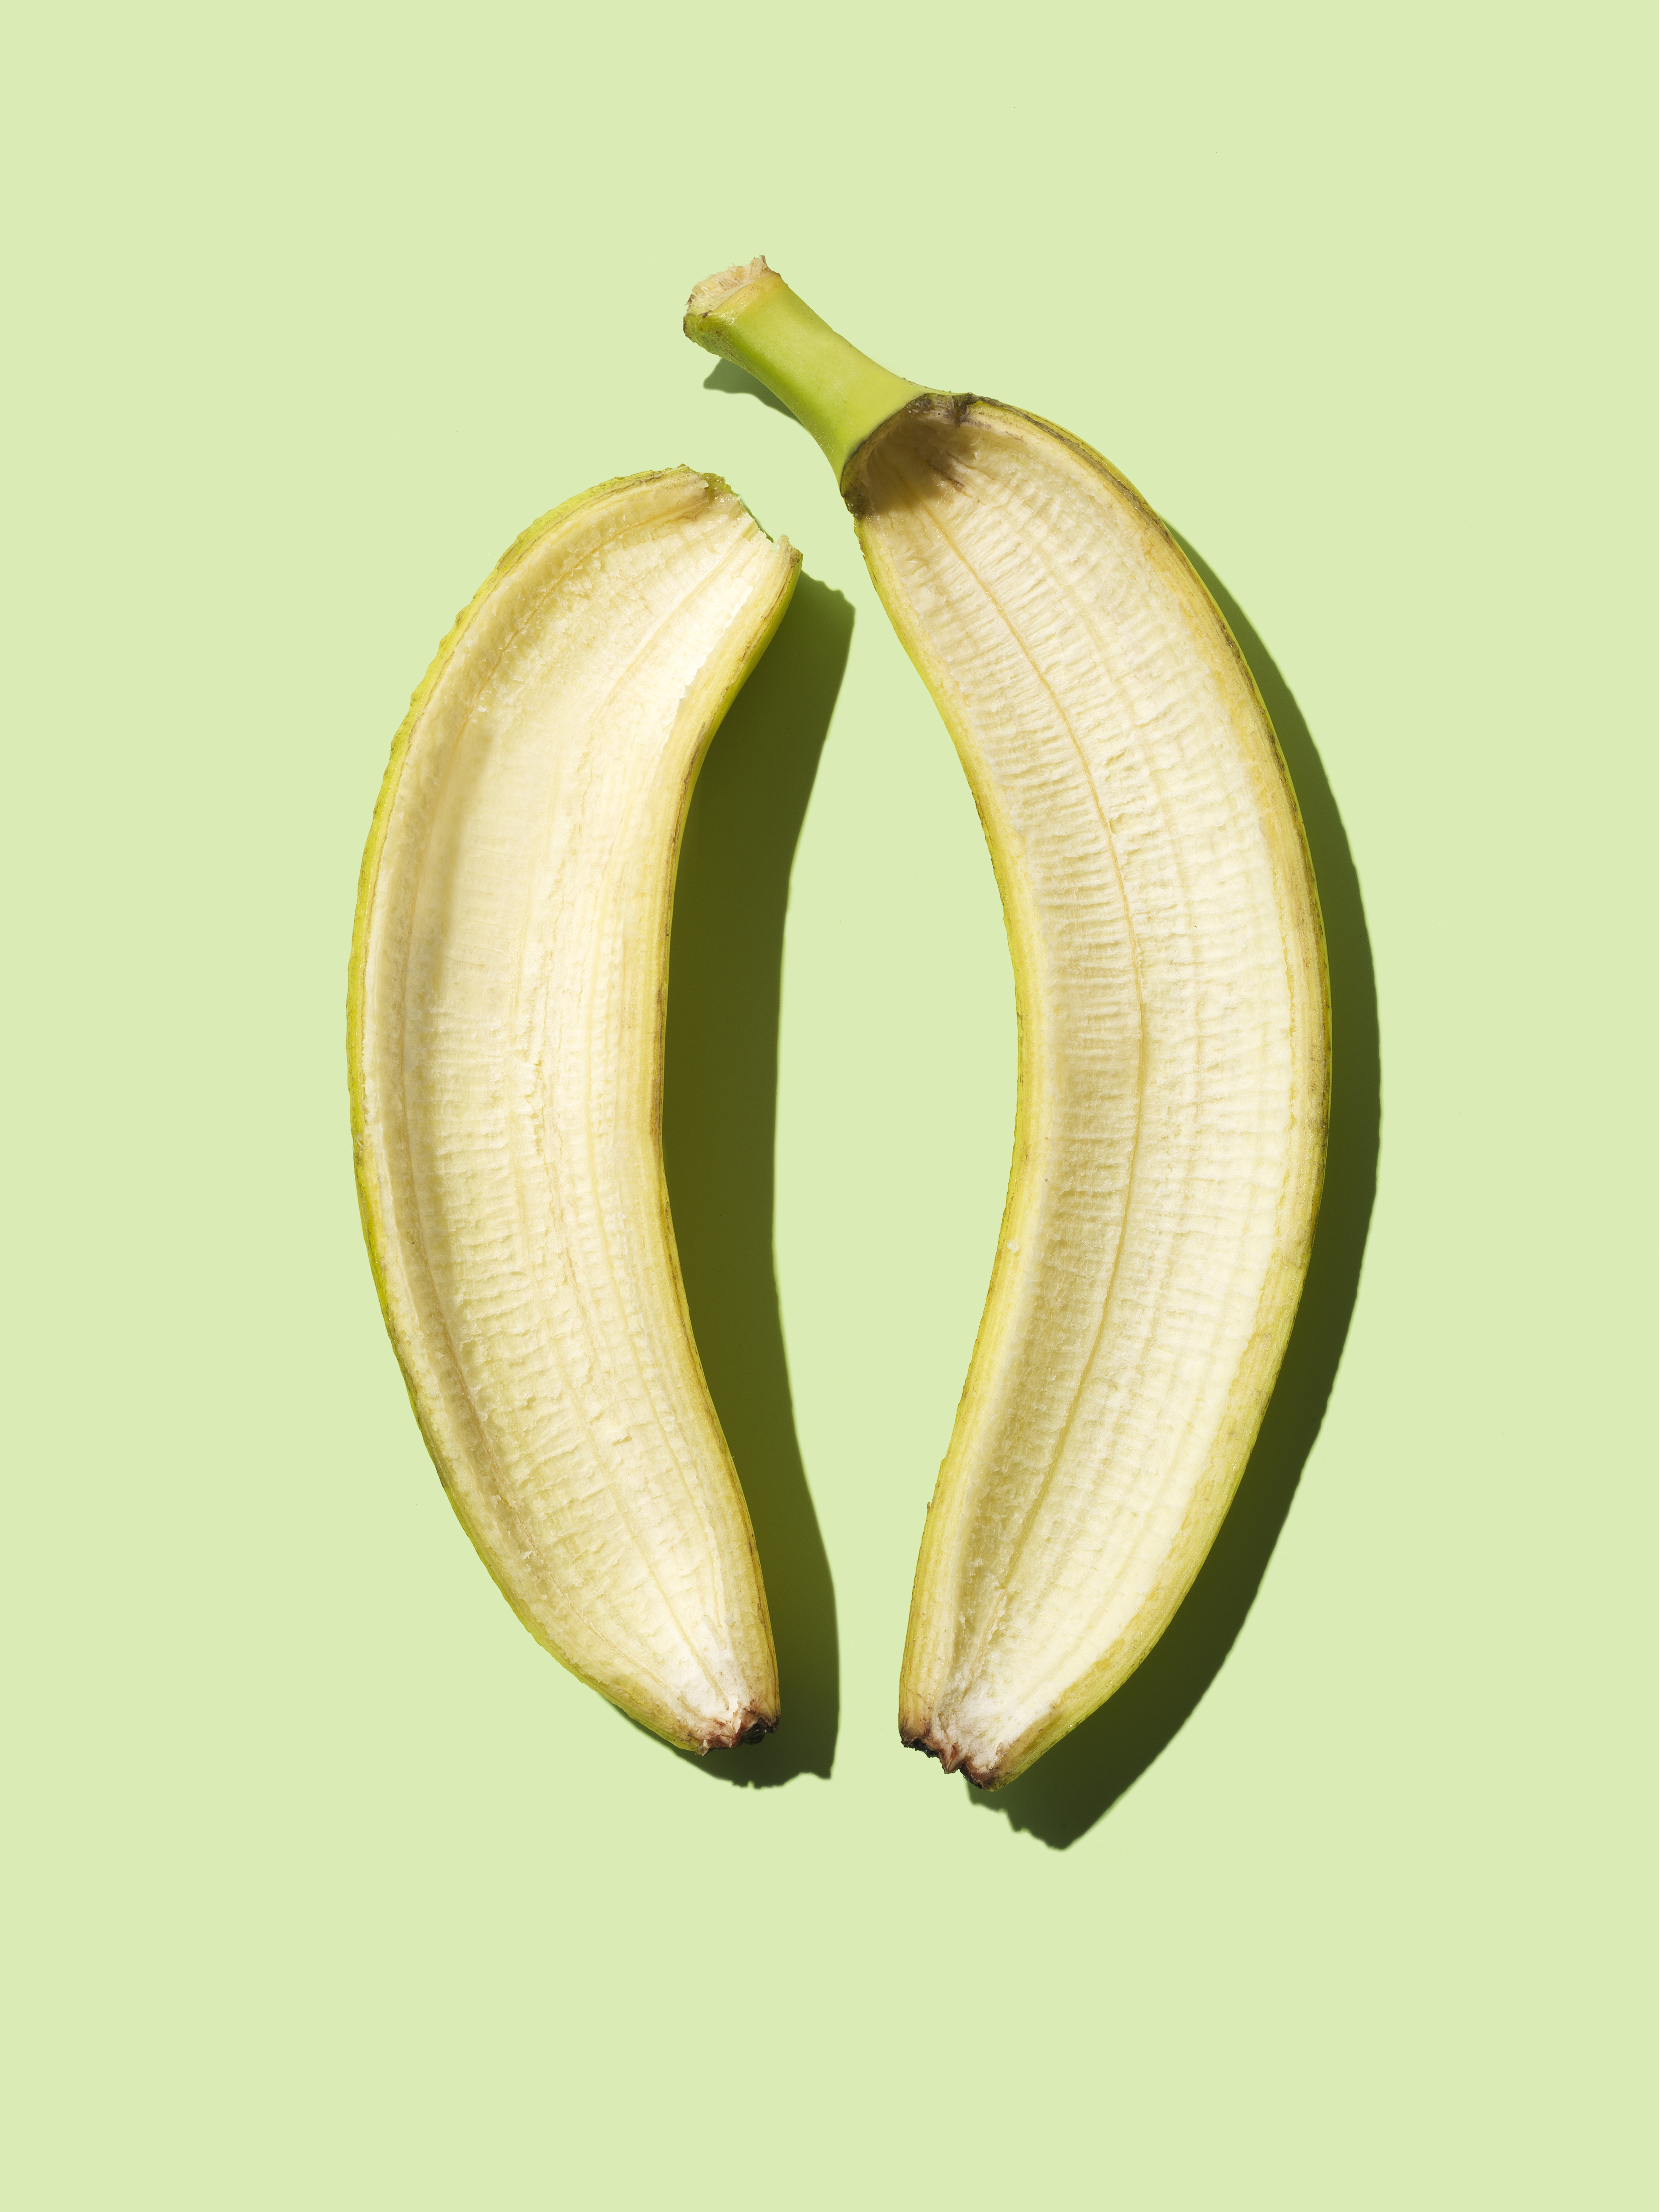 banana peelings for shoe polisher Try these clever hacks for your home and garden using banana peels  buff away scuffs on leather shoes  (a key ingredient in leather polish).